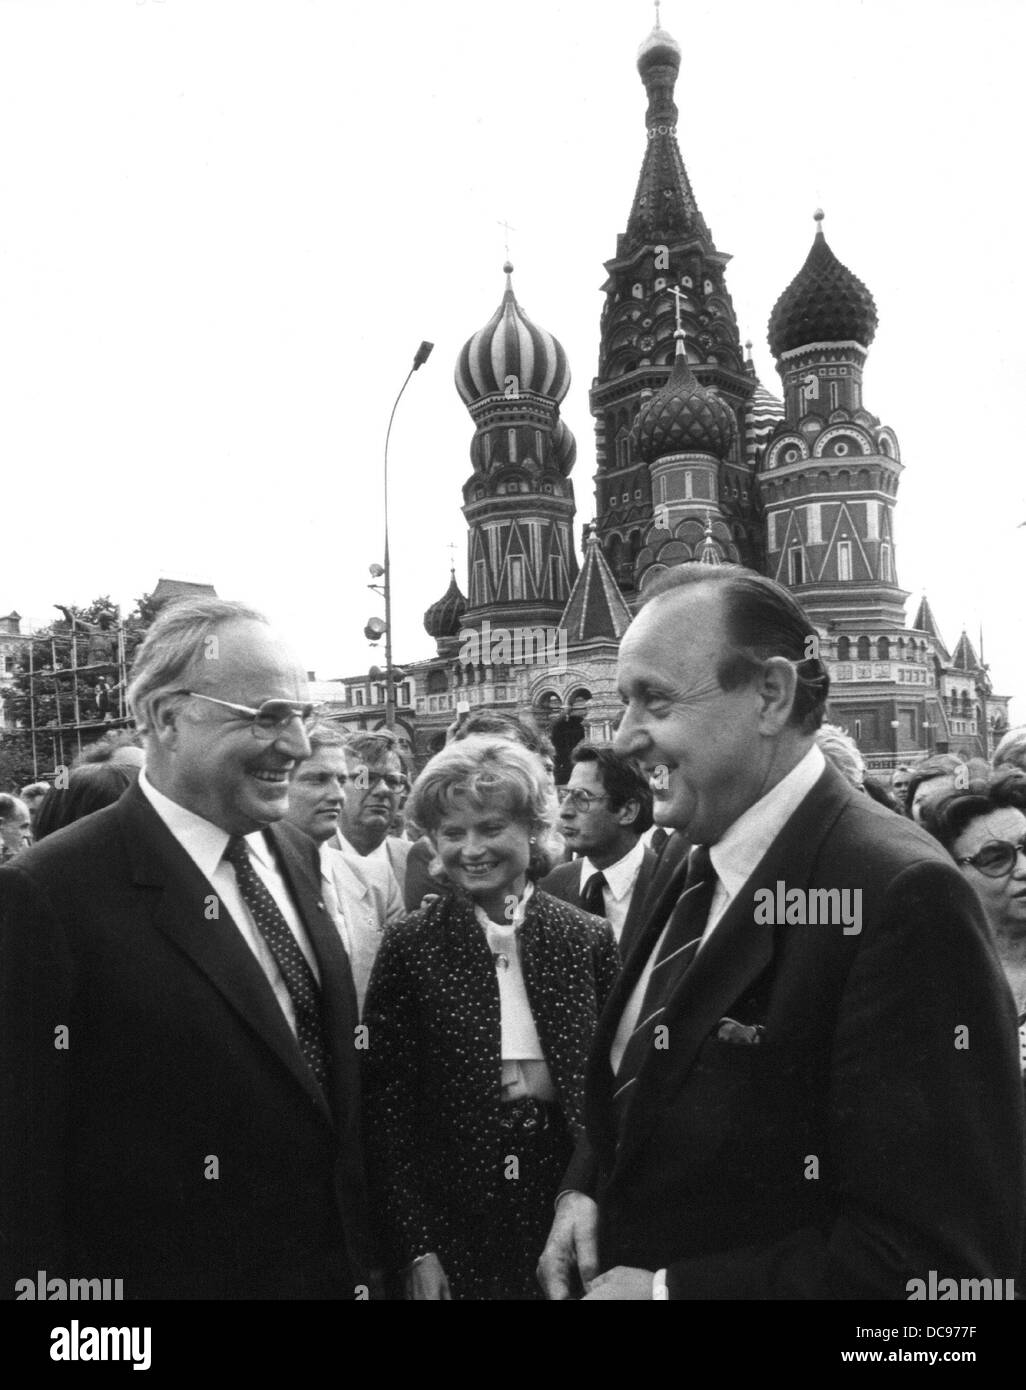 German chancellor Helmut Kohl (l), his wife Marianne Kohl (M) and foreign minister Hans-Dietrich Genscher (r) stand - Stock Image